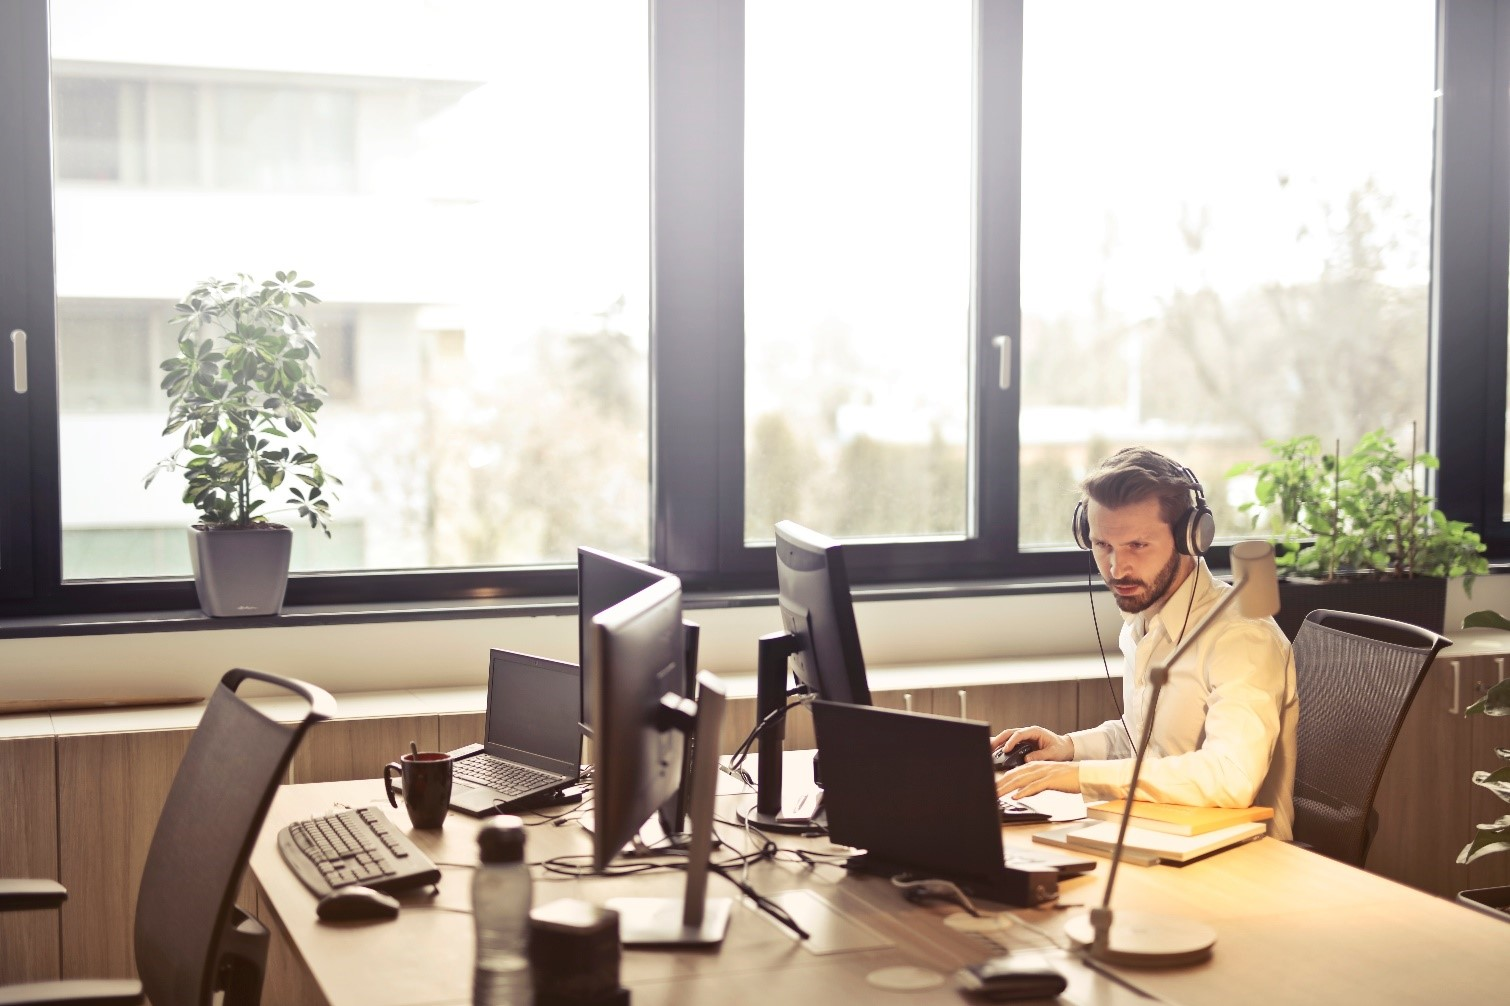 A man with headphones on at a desktop computer next to a window